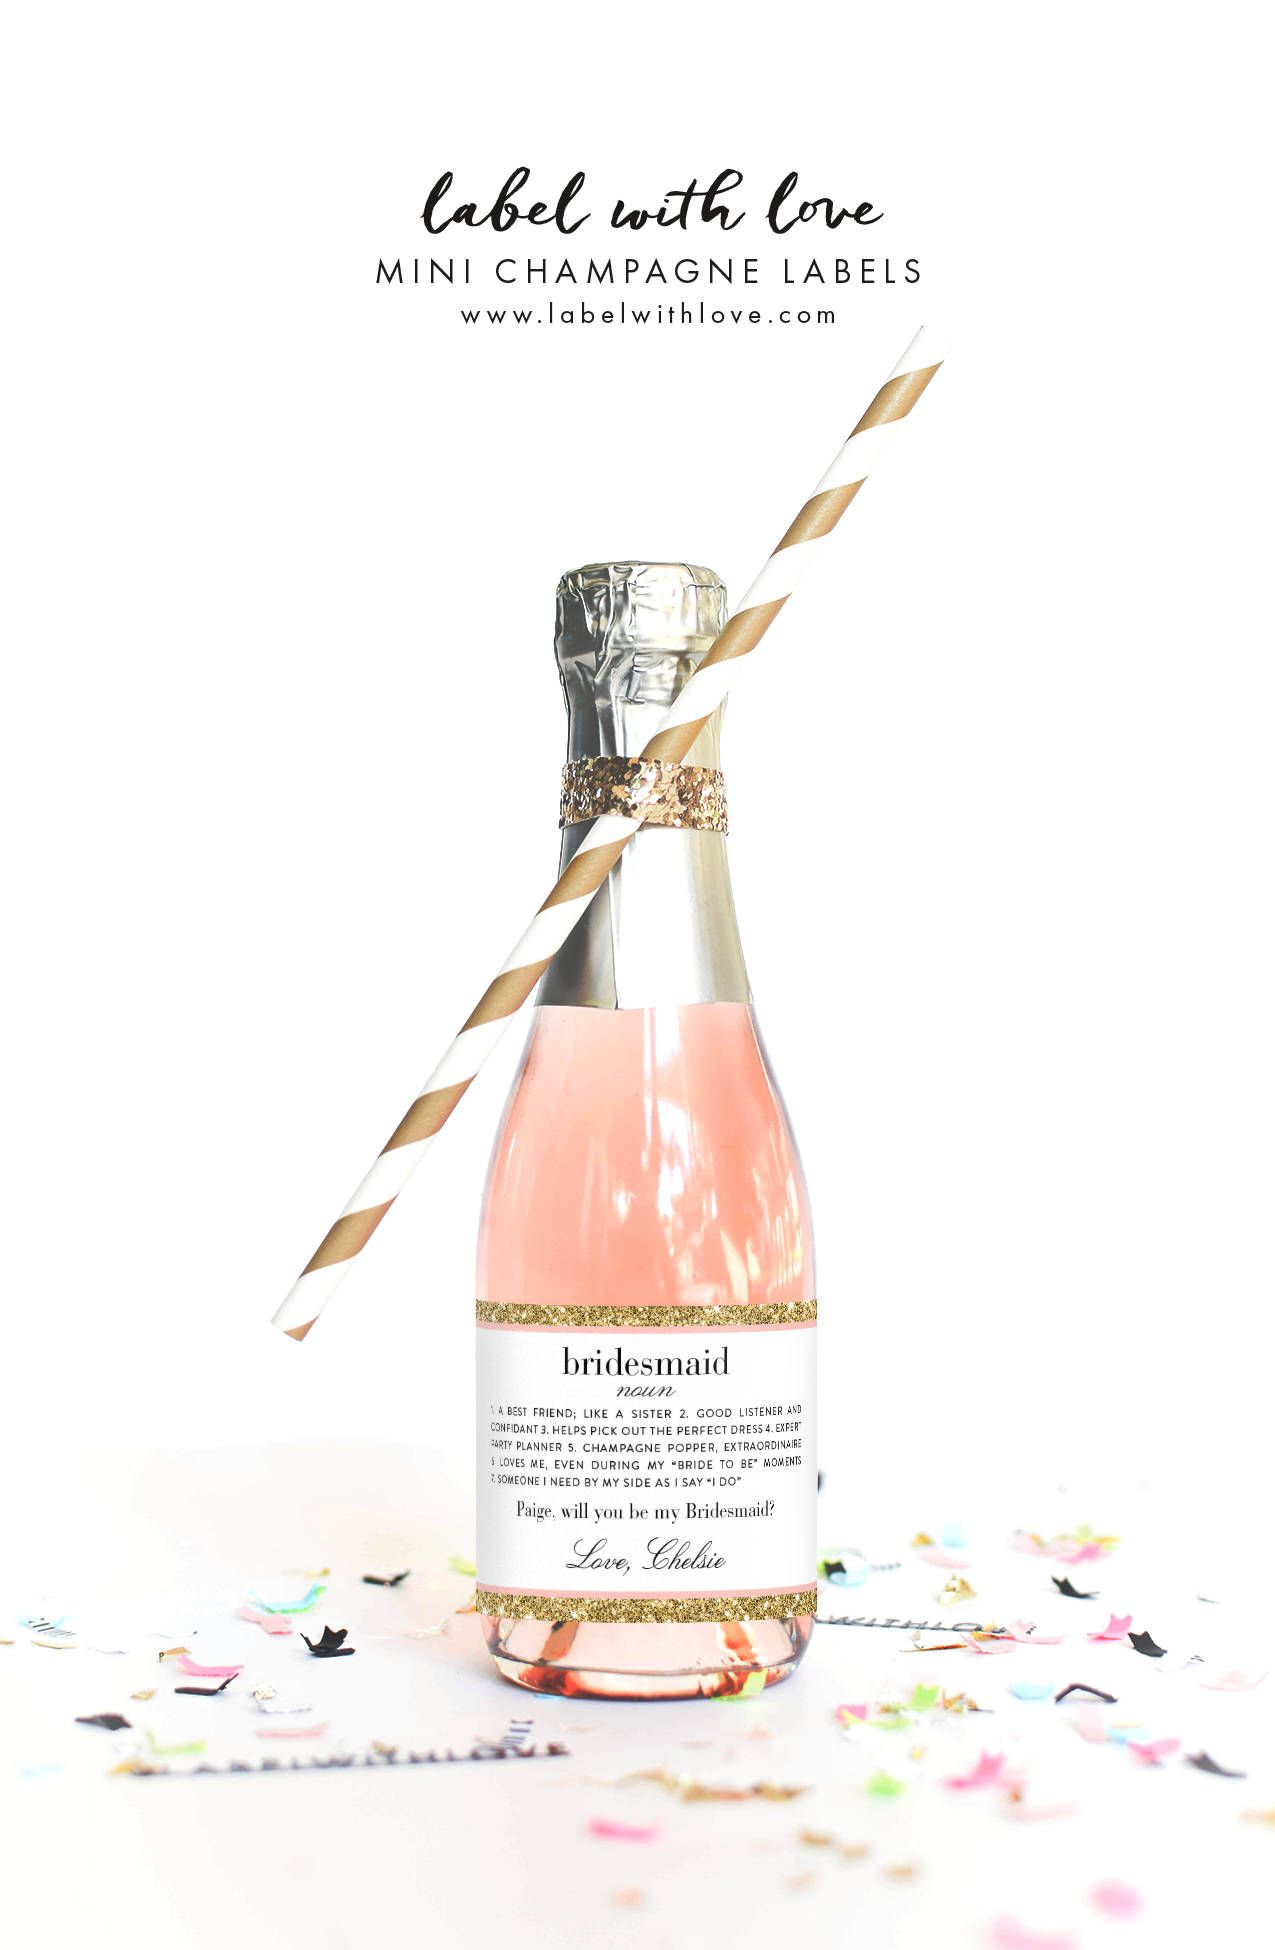 Party Proposal Propose To Your Bridesmaids With A Mini Bottle Of Champagne And A .